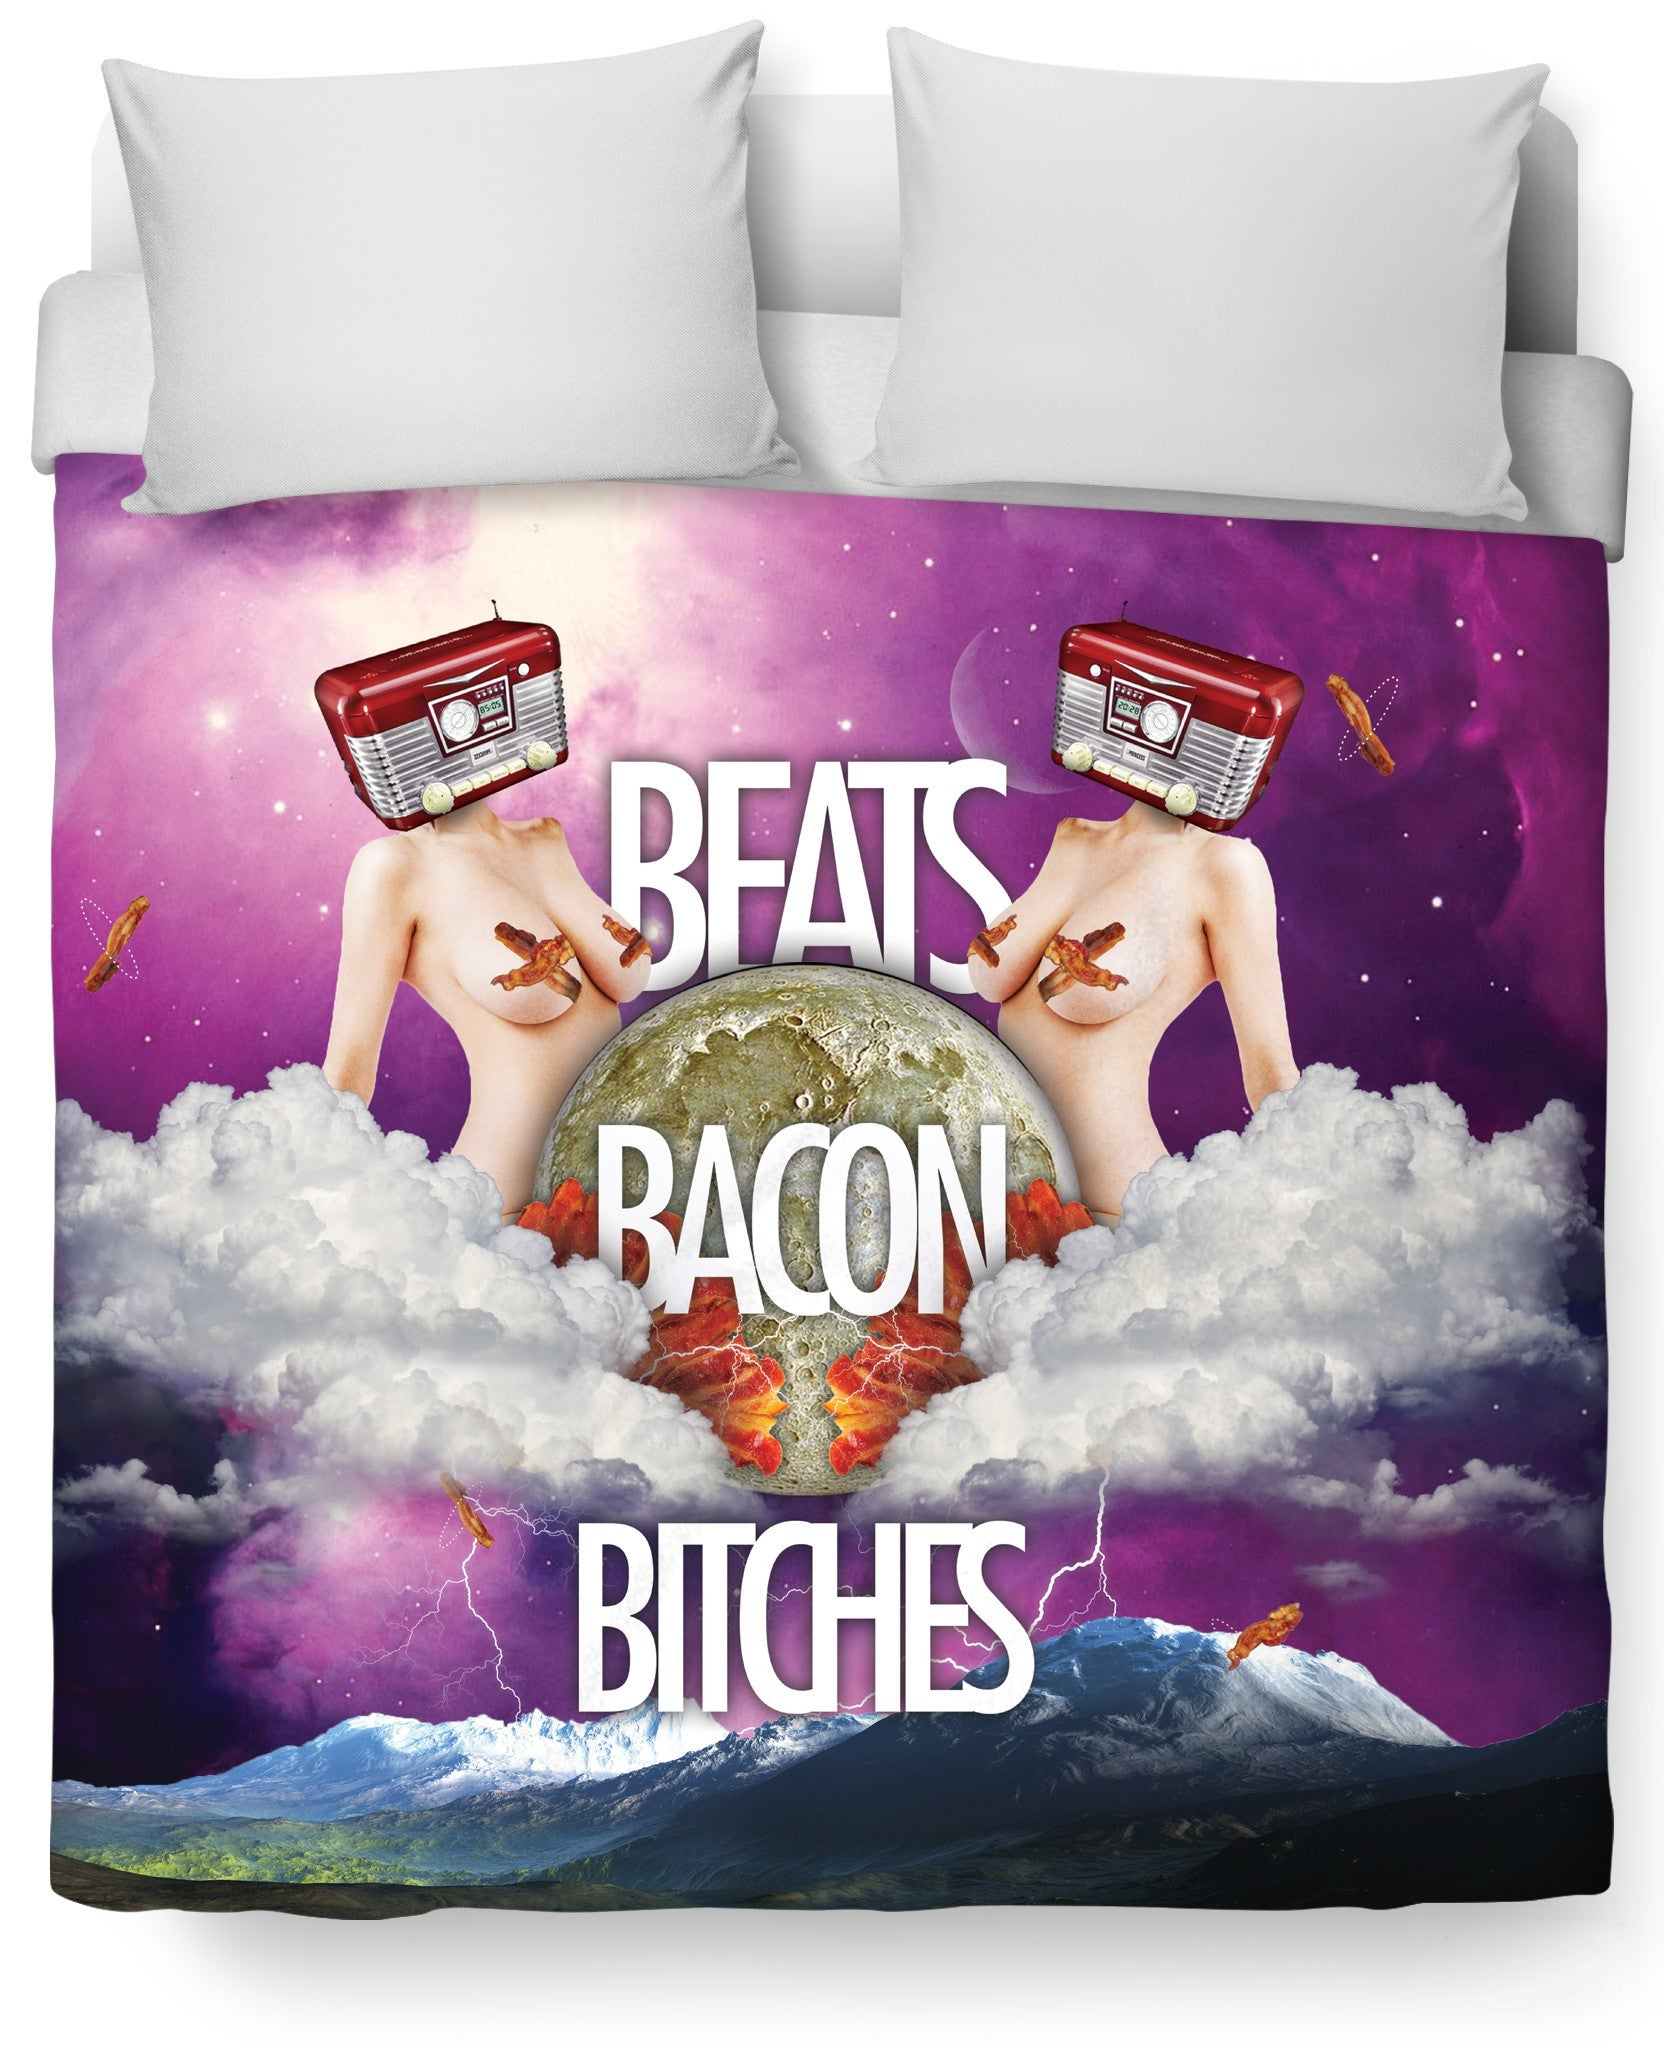 Beats Bacon Bitches Duvet Cover